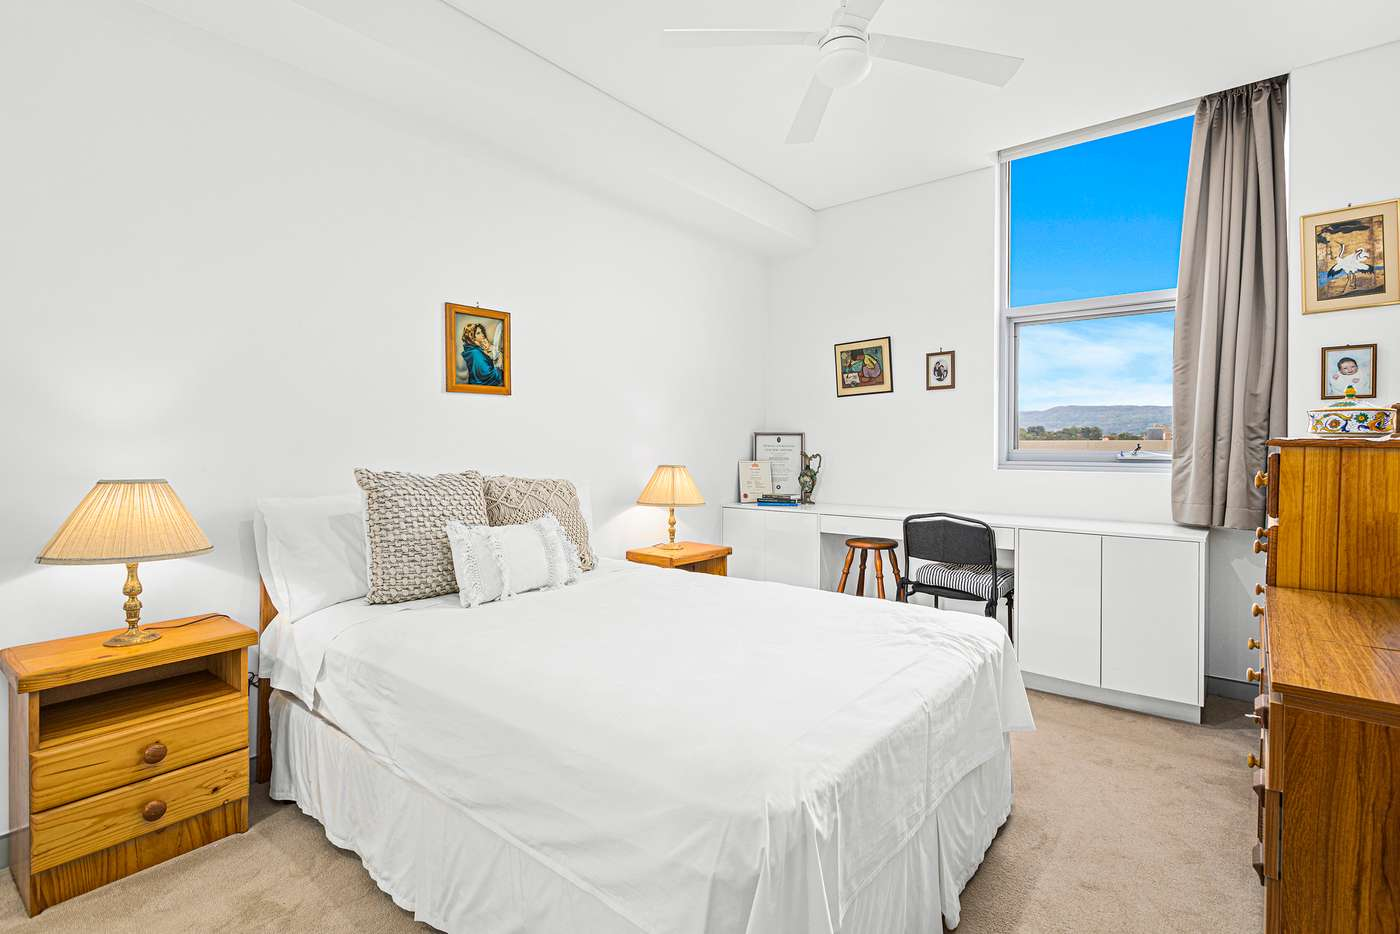 Sixth view of Homely apartment listing, 52/22 Gladstone Avenue, Wollongong NSW 2500